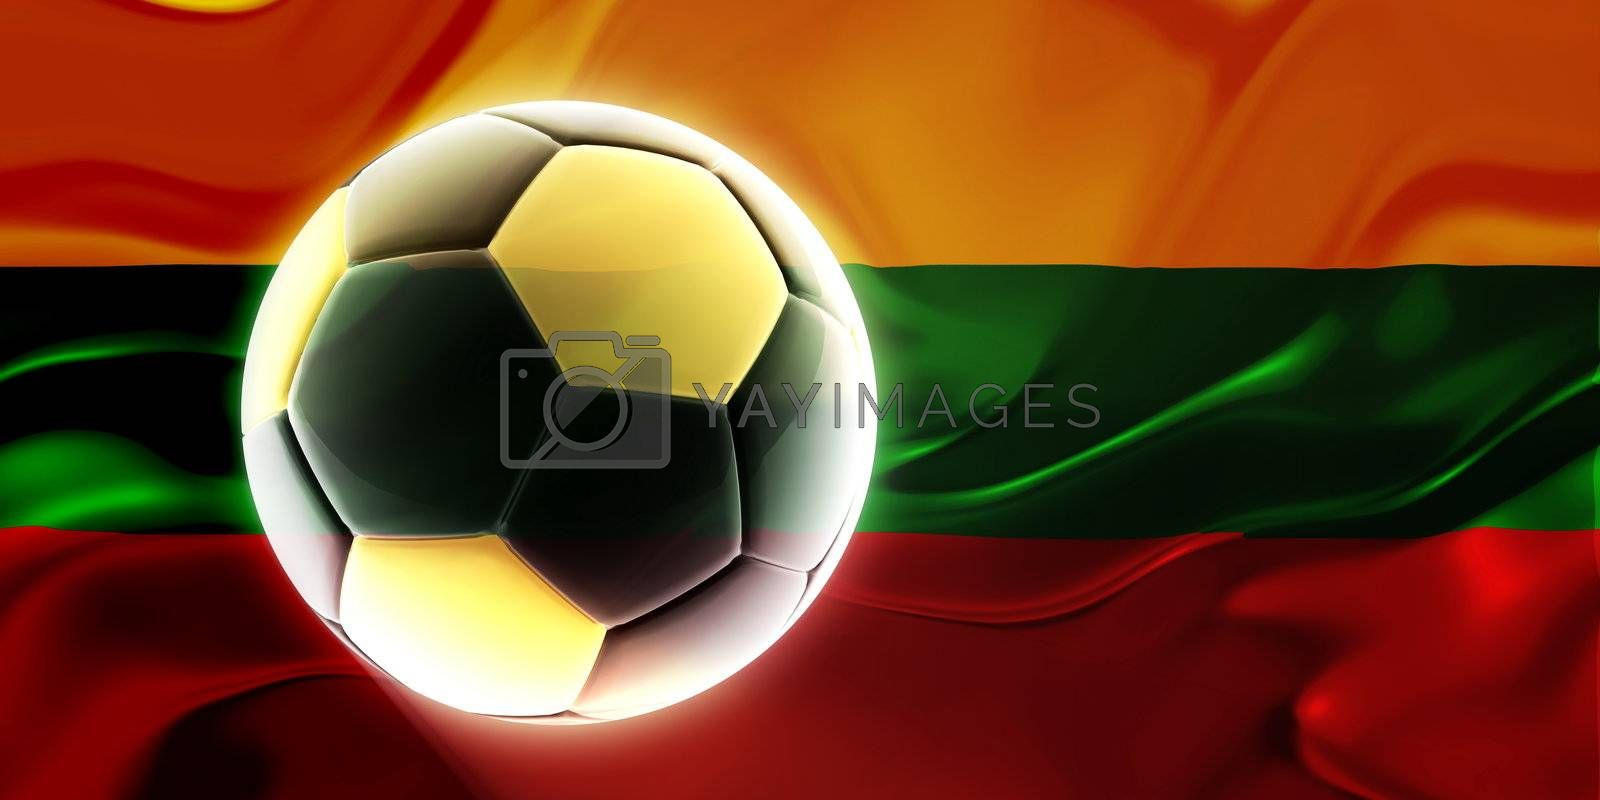 Flag of Lithuania, national country symbol illustration wavy fabric sports soccer football